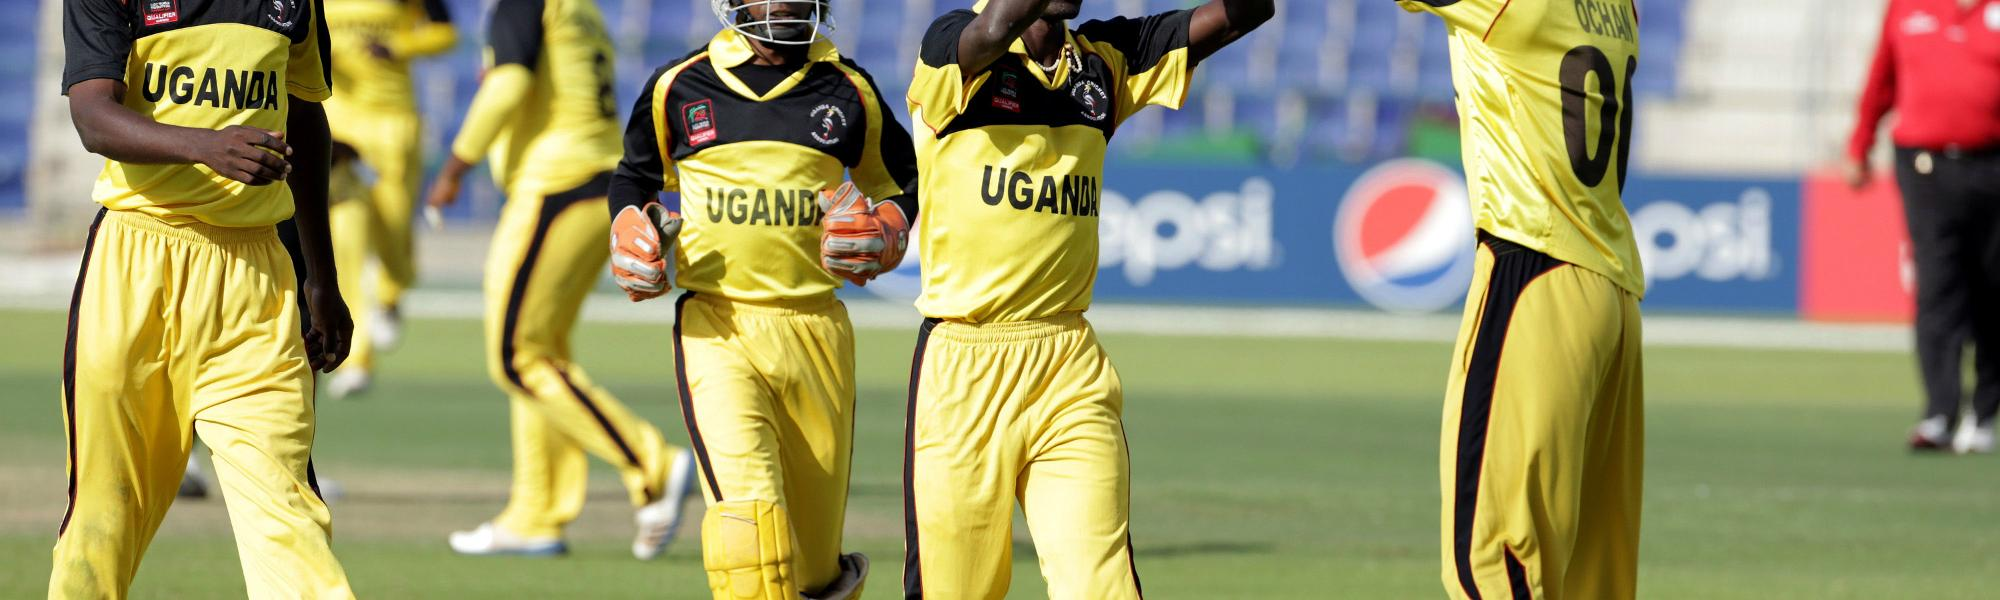 fb07557c4f9 Teams travel to Uganda just three steps from ICC Cricket World Cup 2019